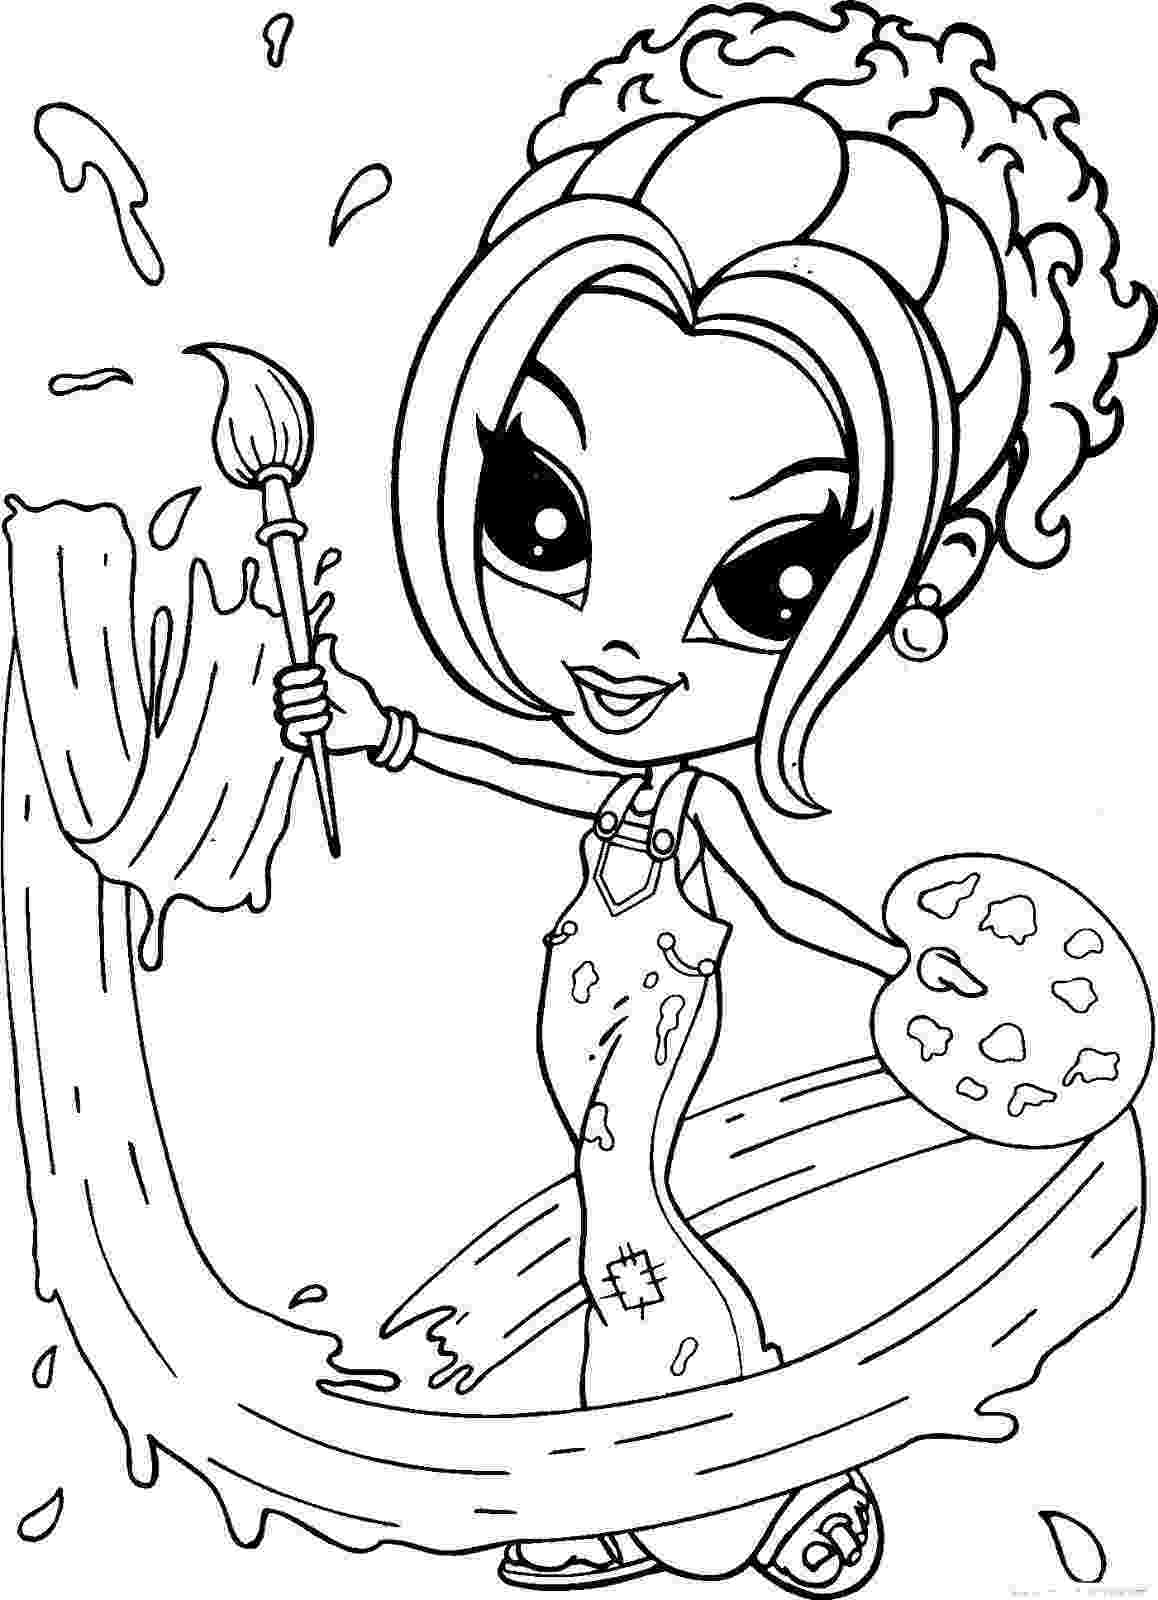 free coloring pages printable large coloring pages to download and print for free coloring pages printable free